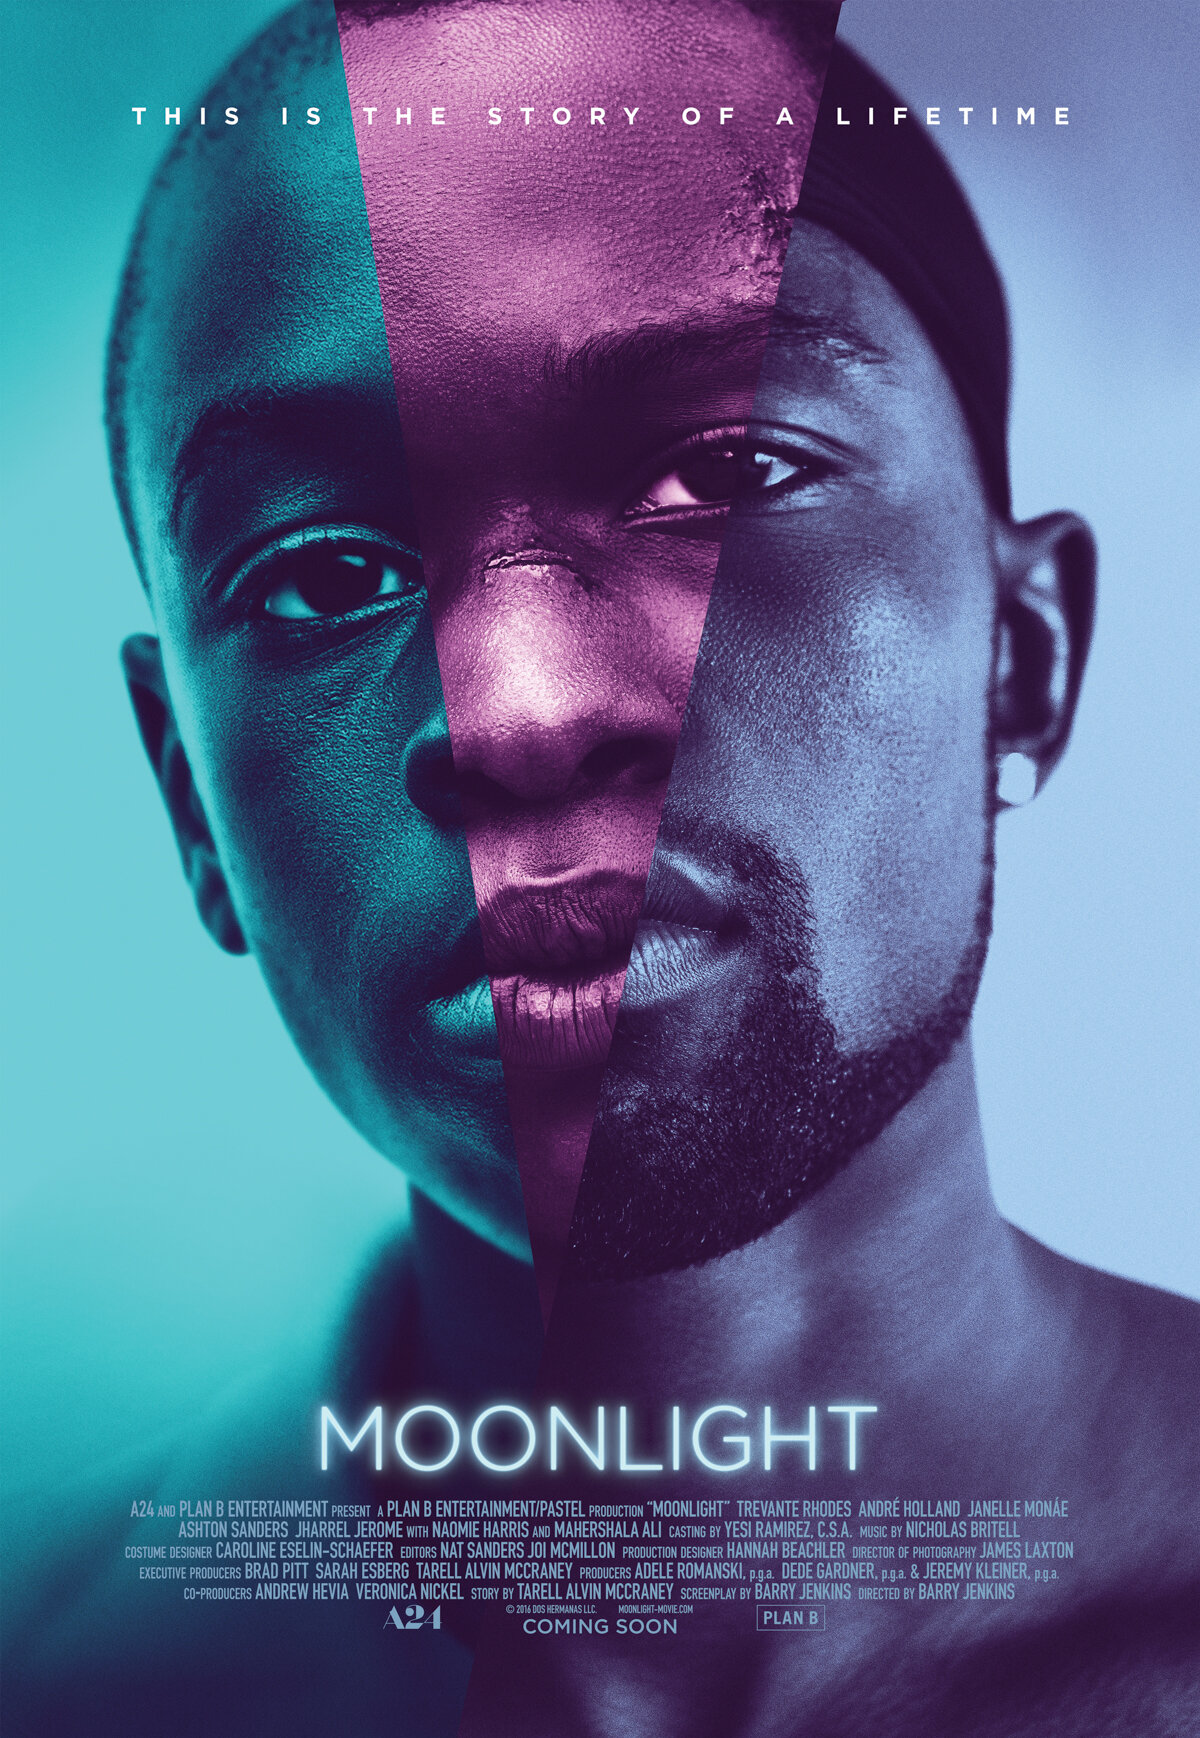 David Bornfriend,  Moonlight  (2016). Courtesy of the artist and A24.